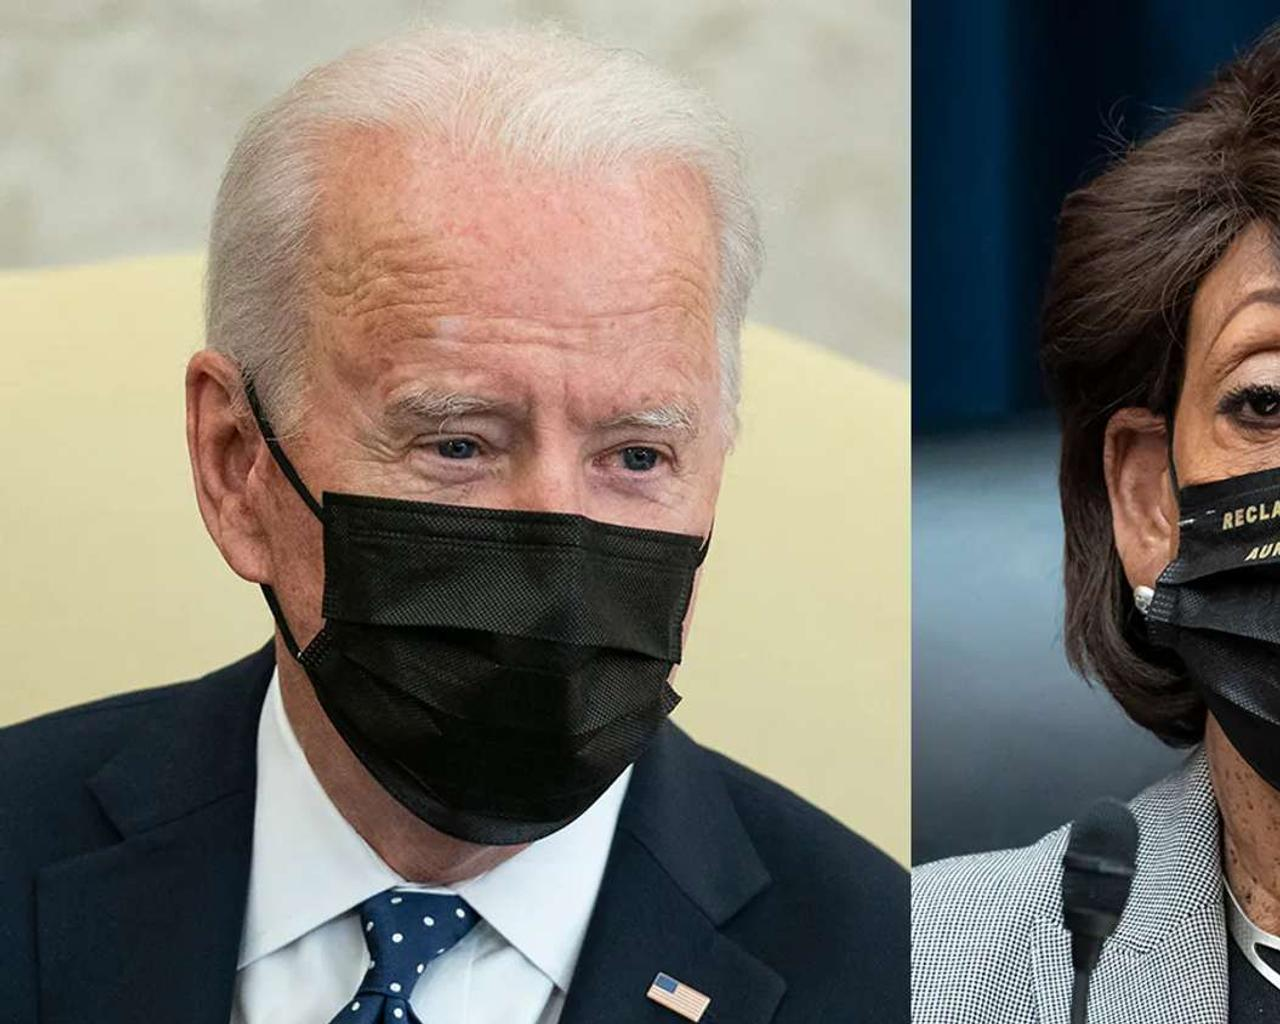 Maxine Waters', Biden's pre-Chauvin verdict comments come under scrutiny as defense eyes appeal